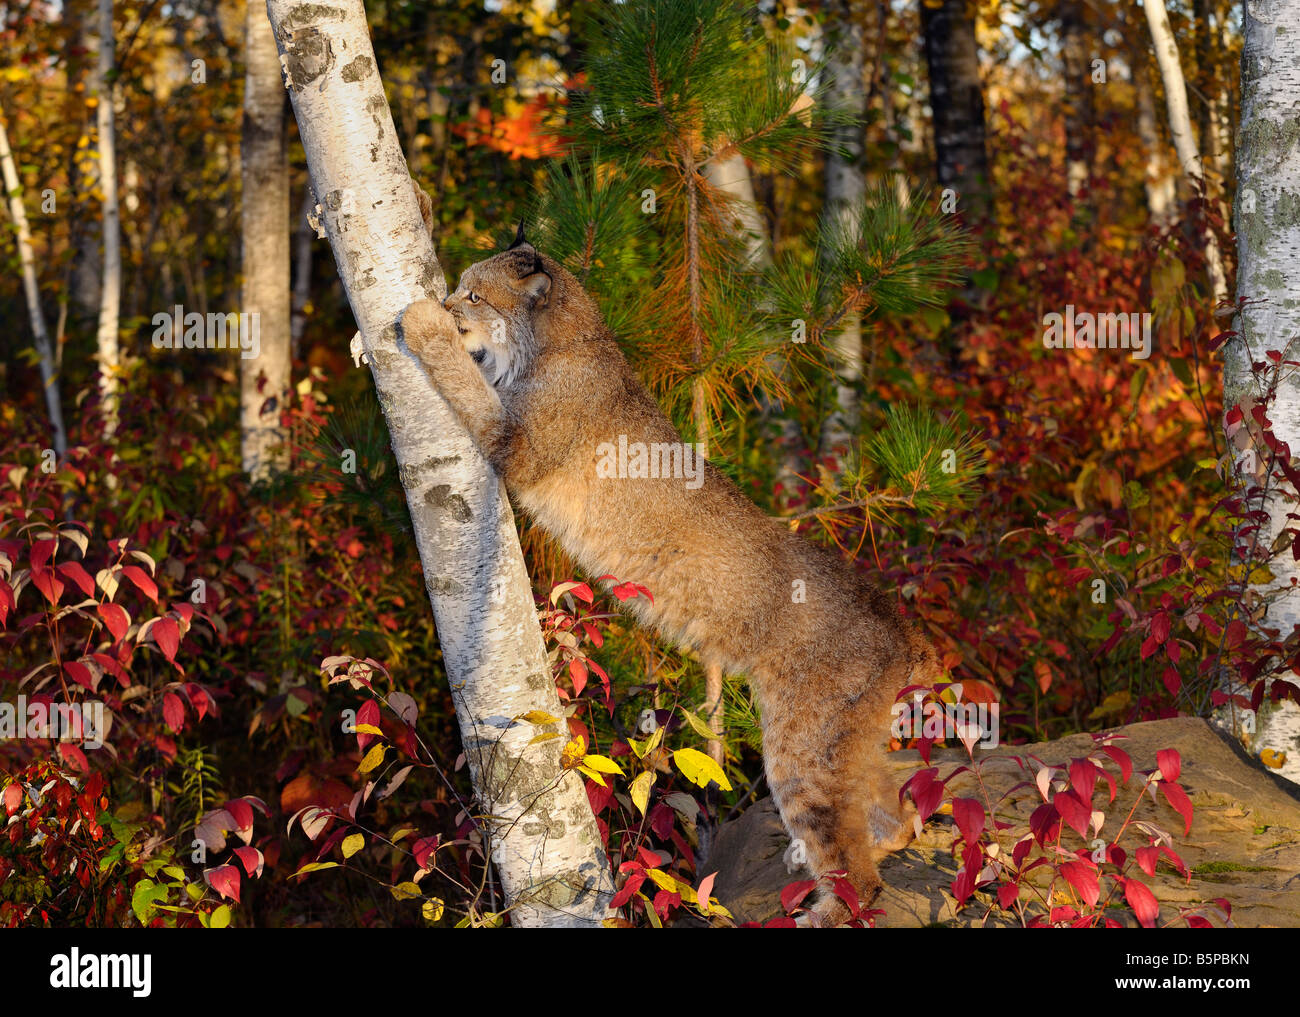 Canadian Lynx on hind feet sharpening claws by scratching a Birch tree in an Autumn forest - Stock Image